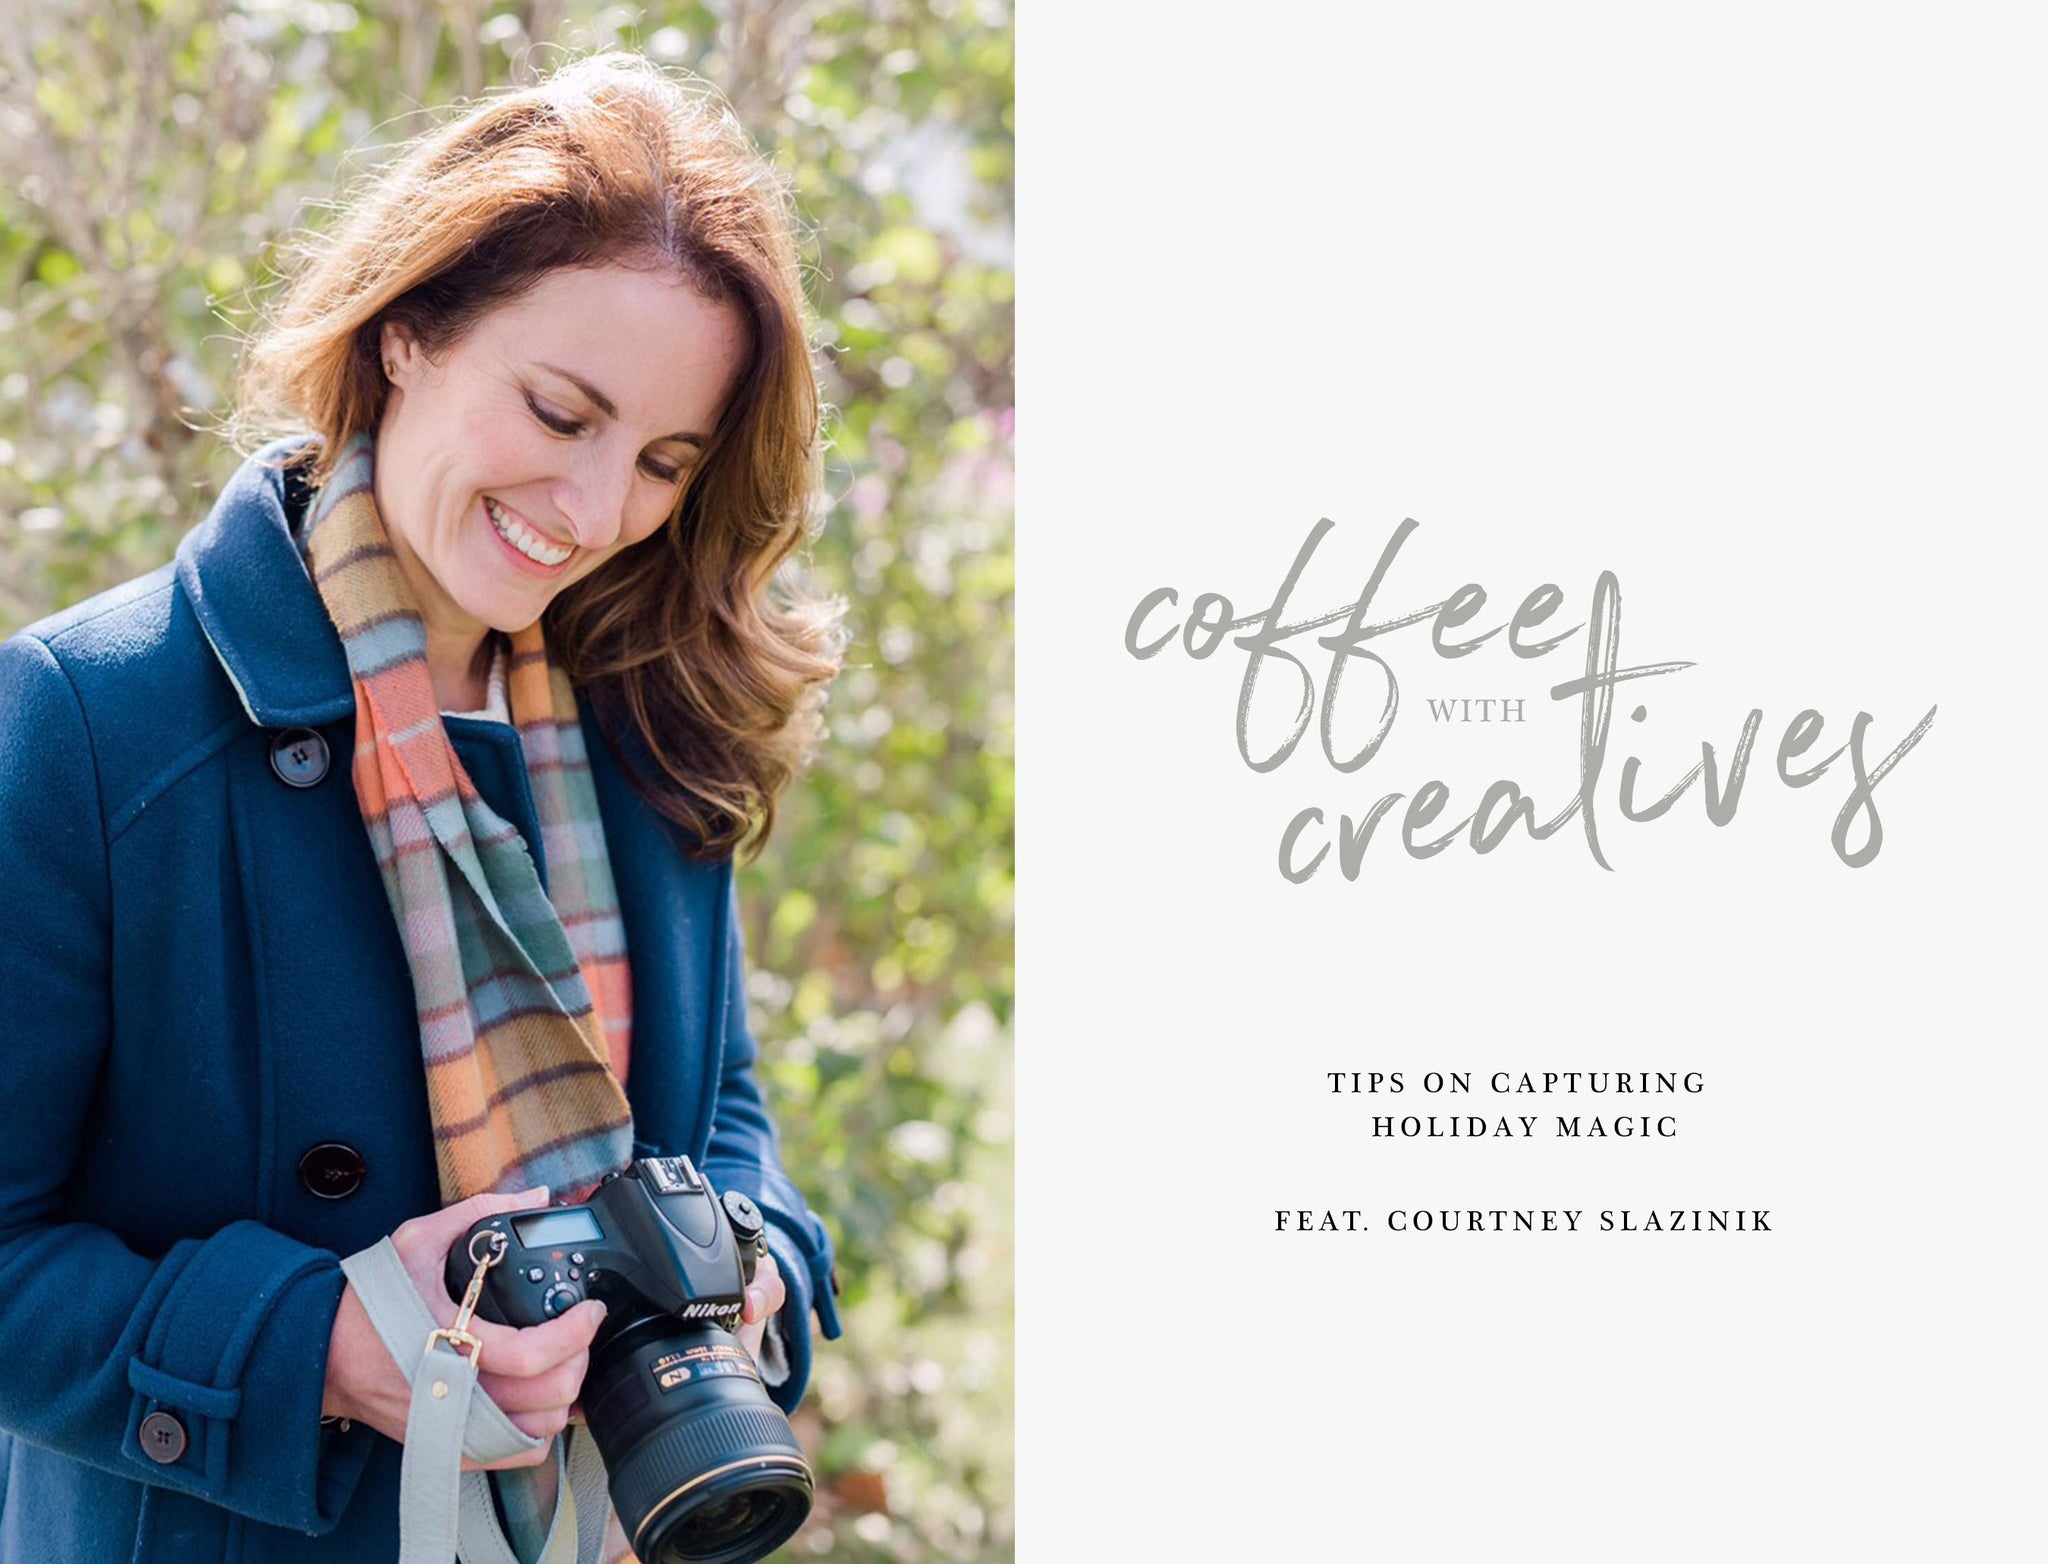 FOTO Blog: Capturing Holiday Magic with Courtney Slazinik